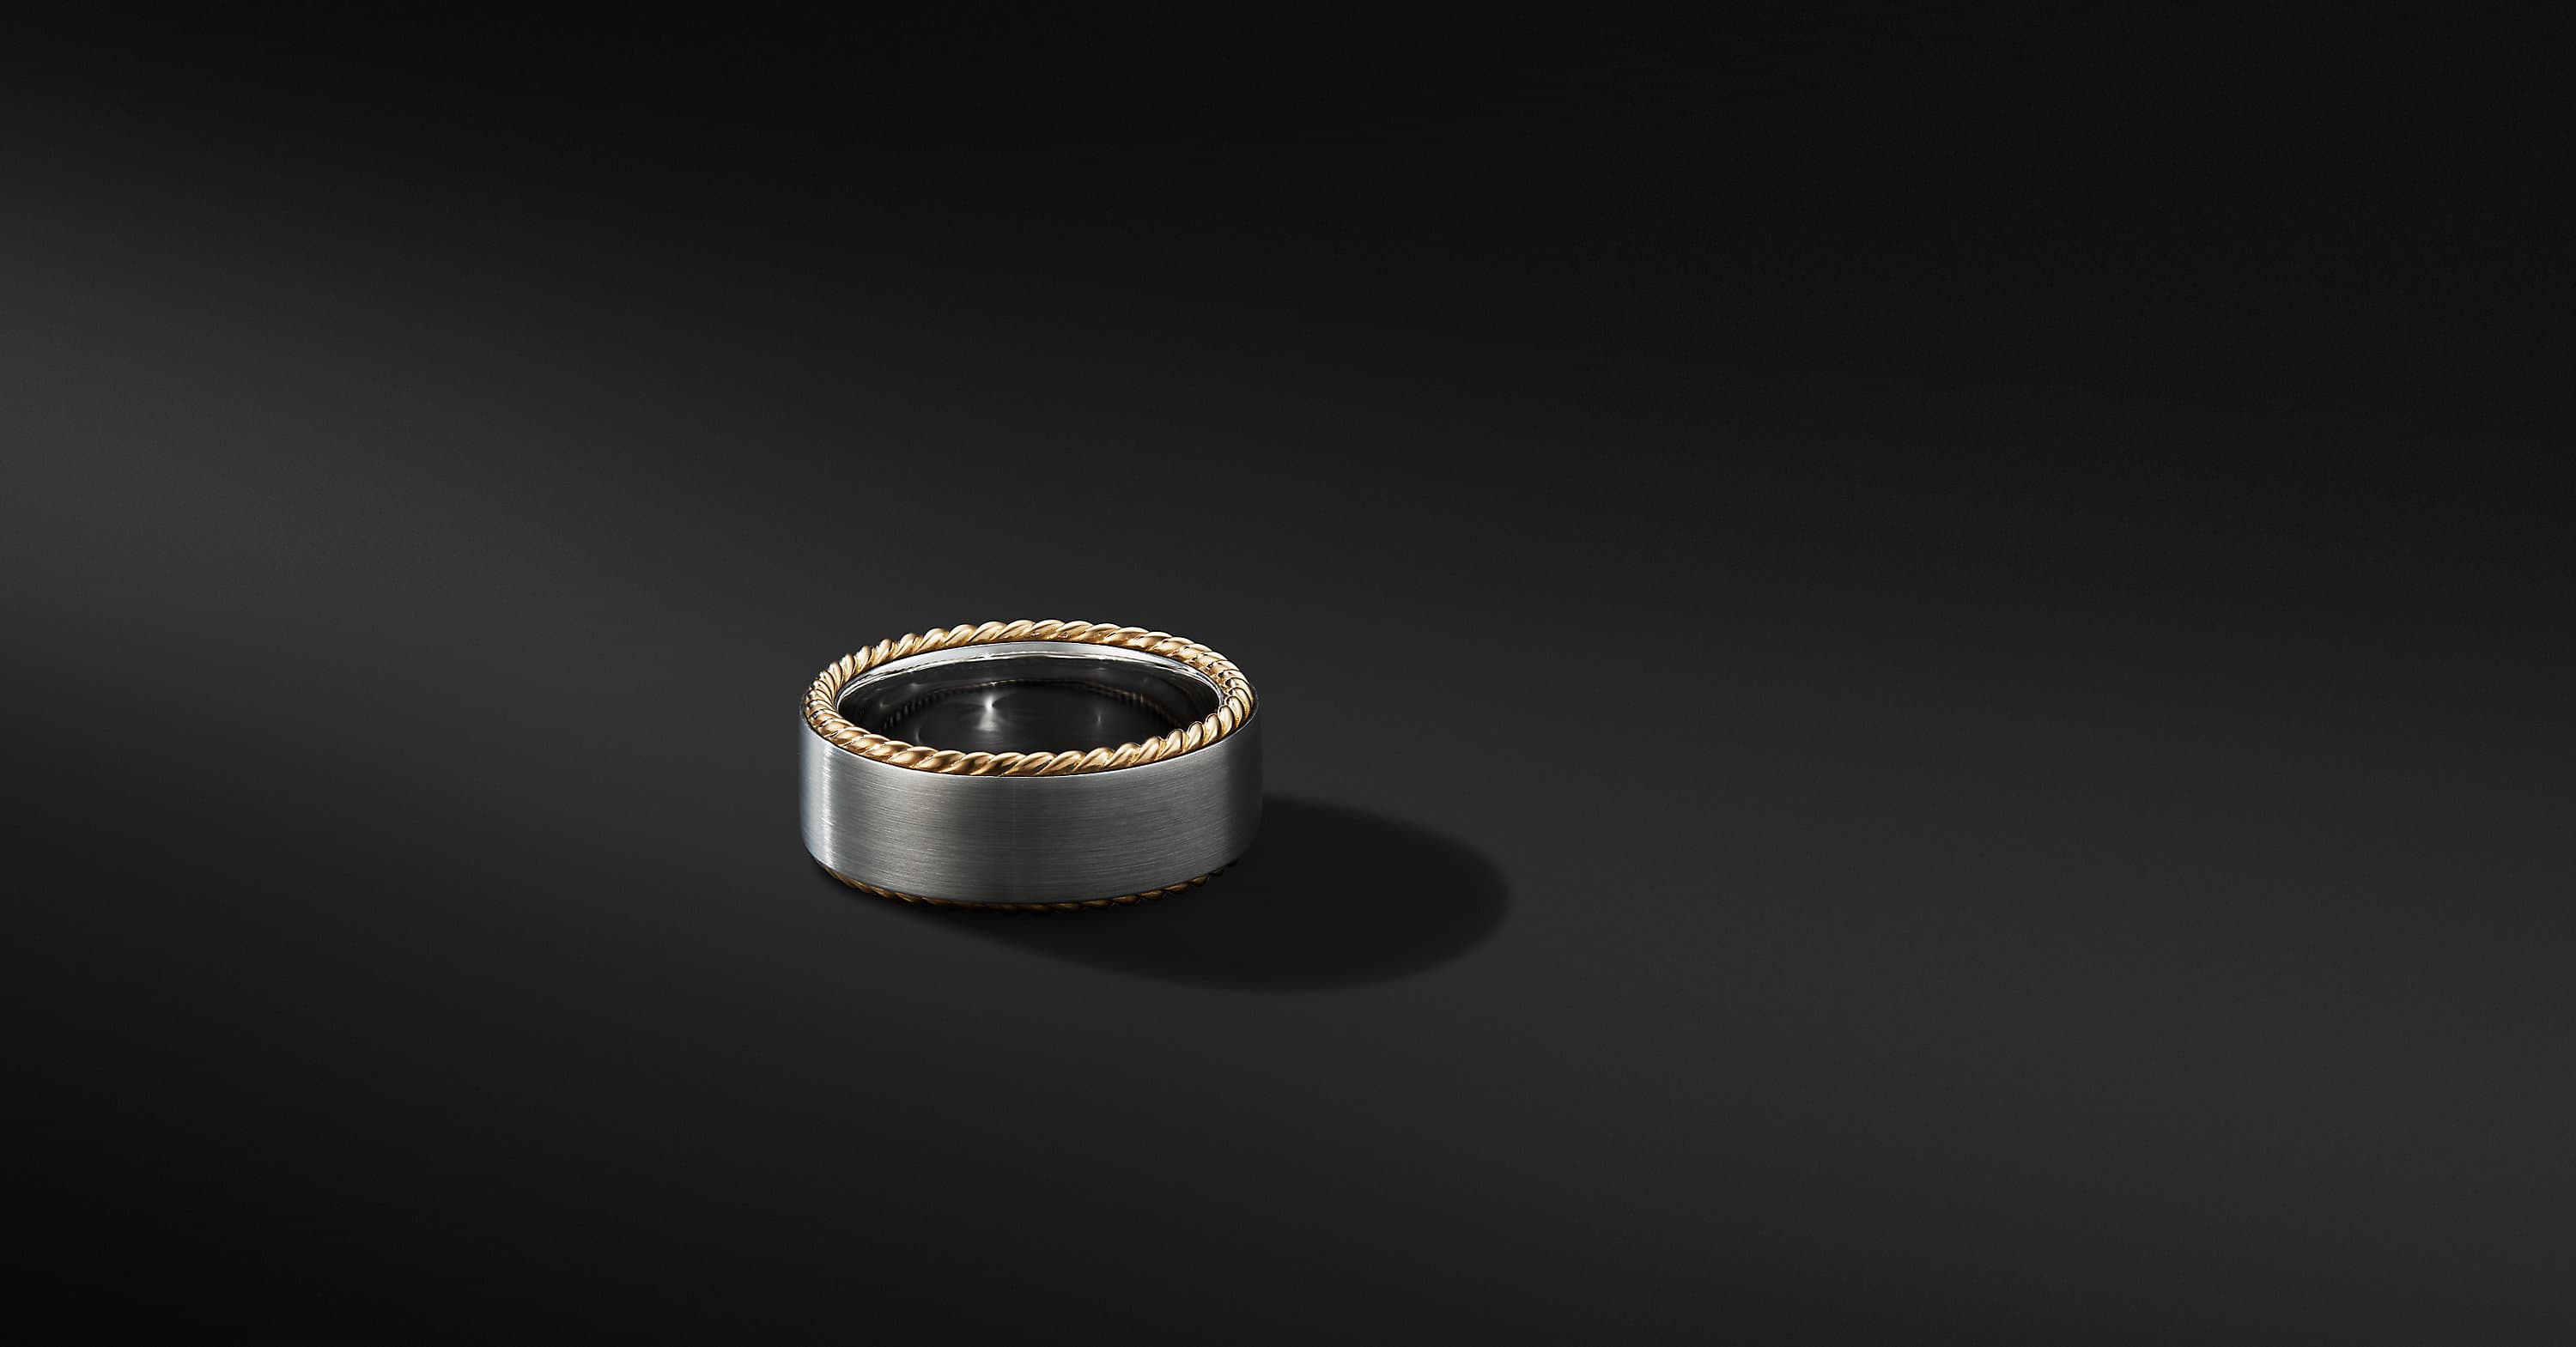 Streamline Cable Band Ring with 18K Yellow Gold, 9mm